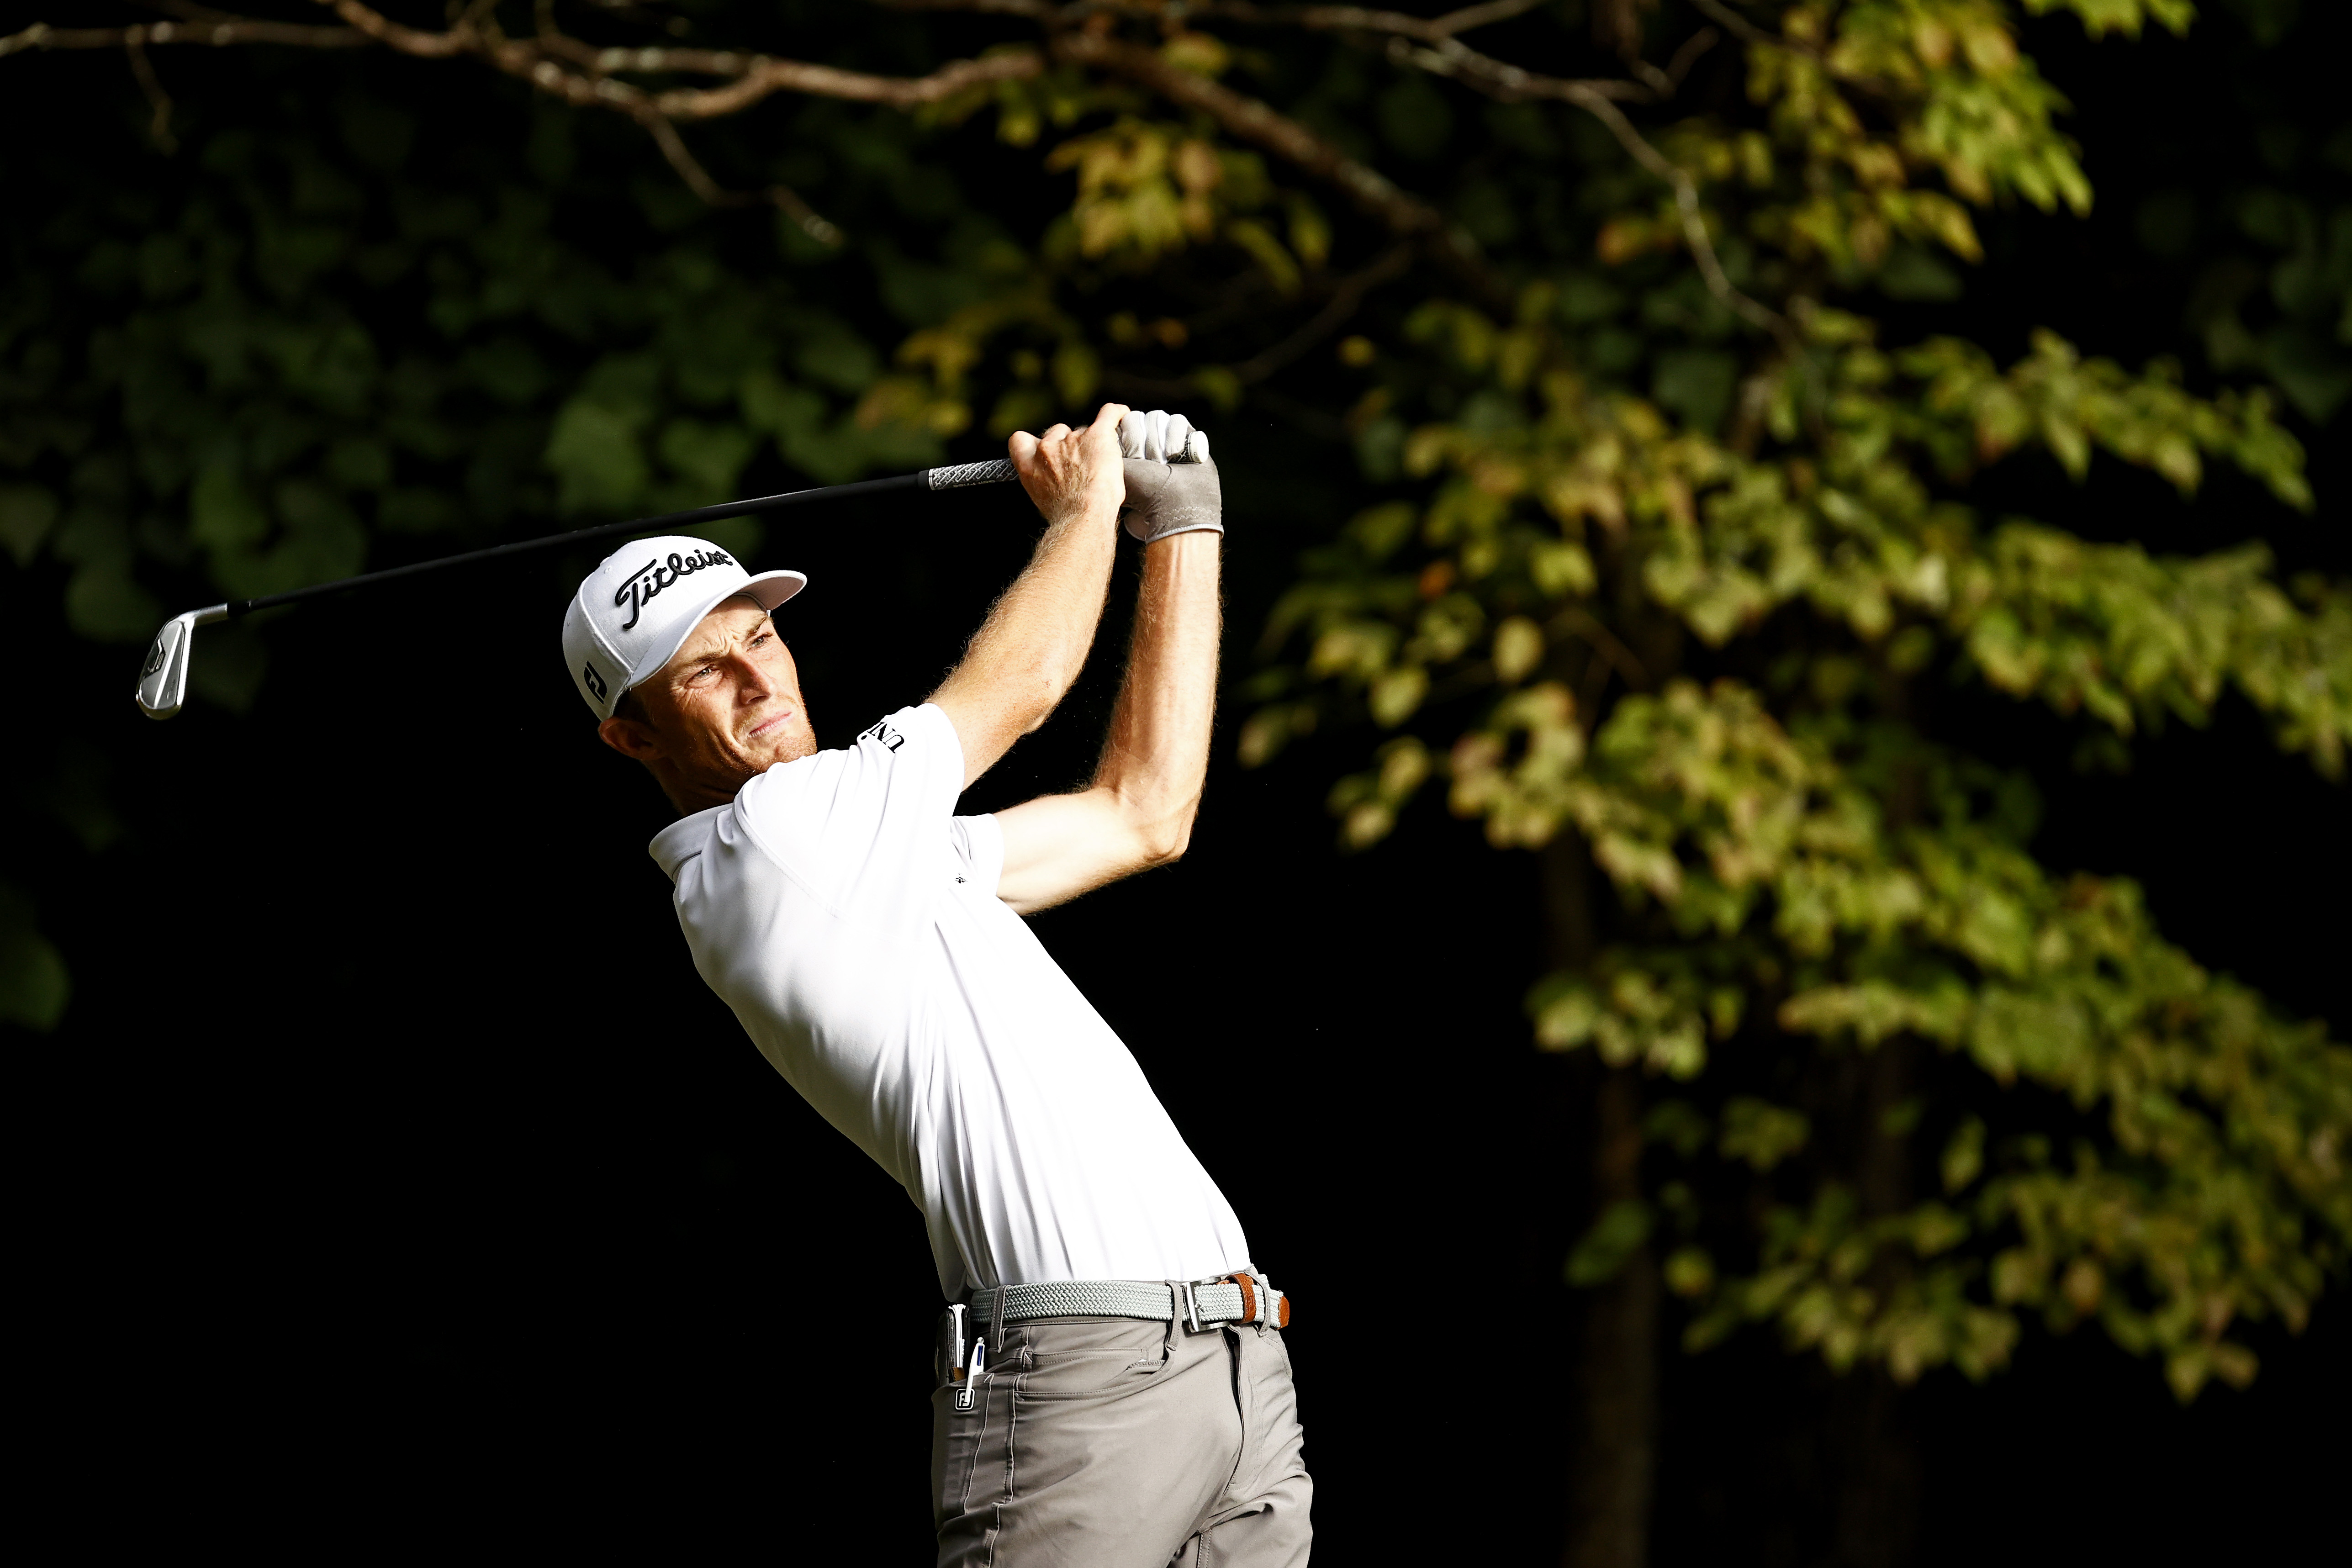 Will Zalatoris of the United States plays his shot from the second tee during the final round of the Wyndham Championship at Sedgefield Country Club on August 15, 2021 in Greensboro, North Carolina.